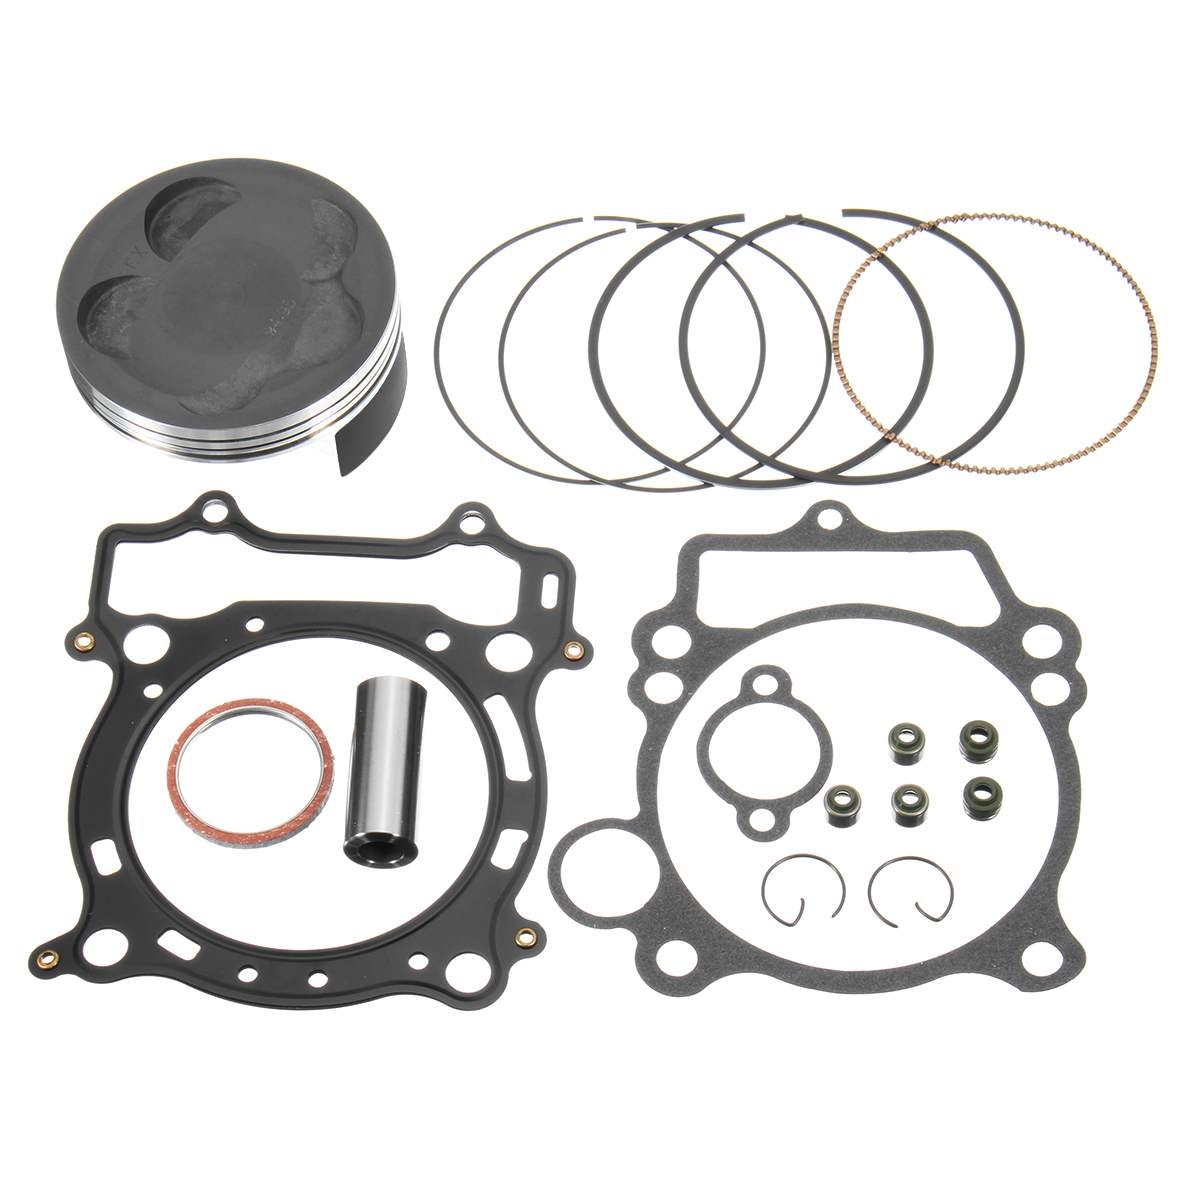 Yamaha 4 Cylinder Motorcycle Engine: Aliexpress.com : Buy Size A Motorcycle Engine Piston Ring